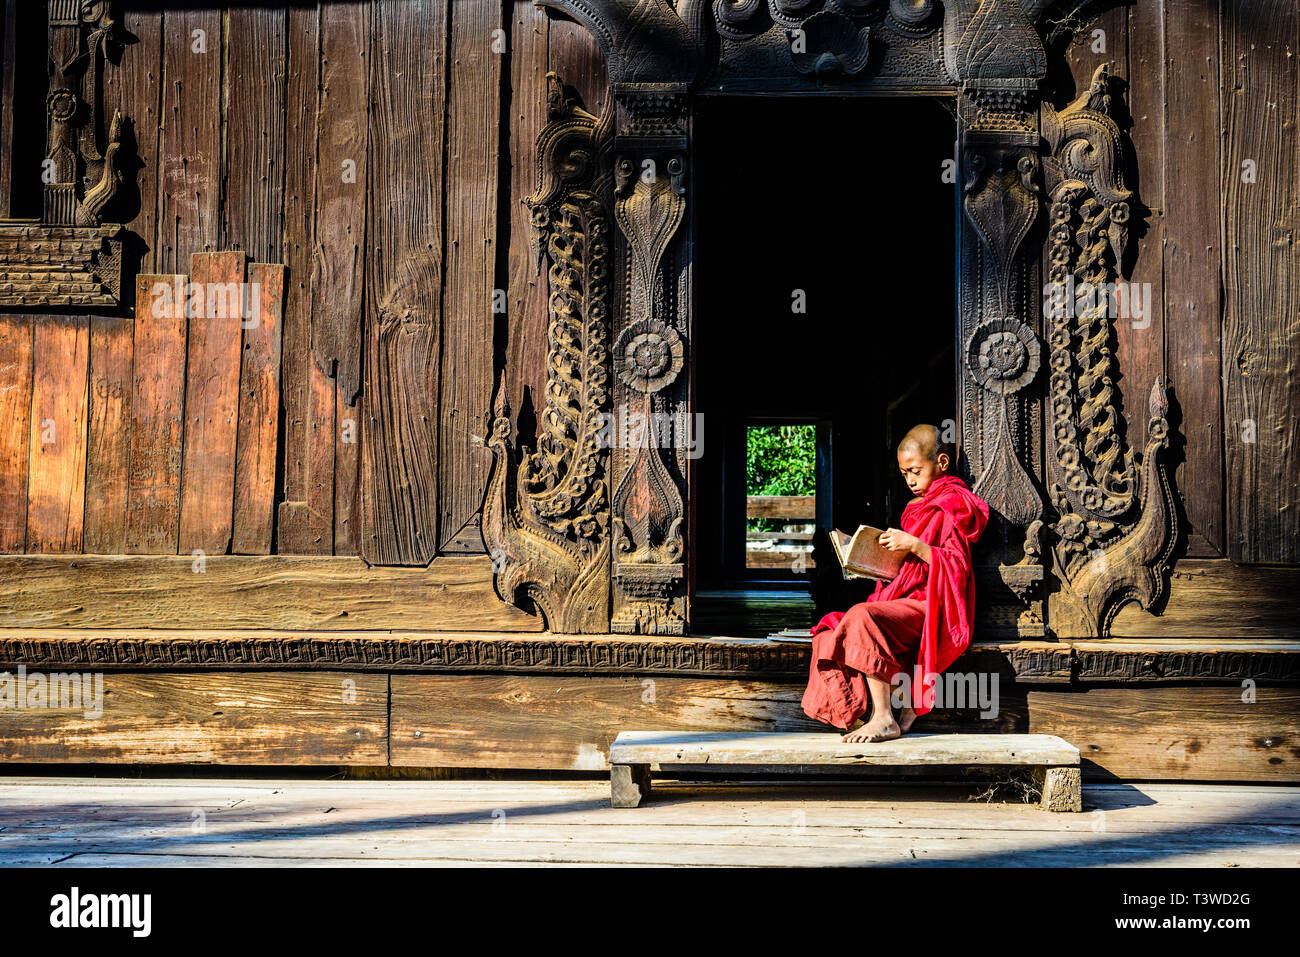 Asian monk reading by ornate doorway to temple - Stock Image